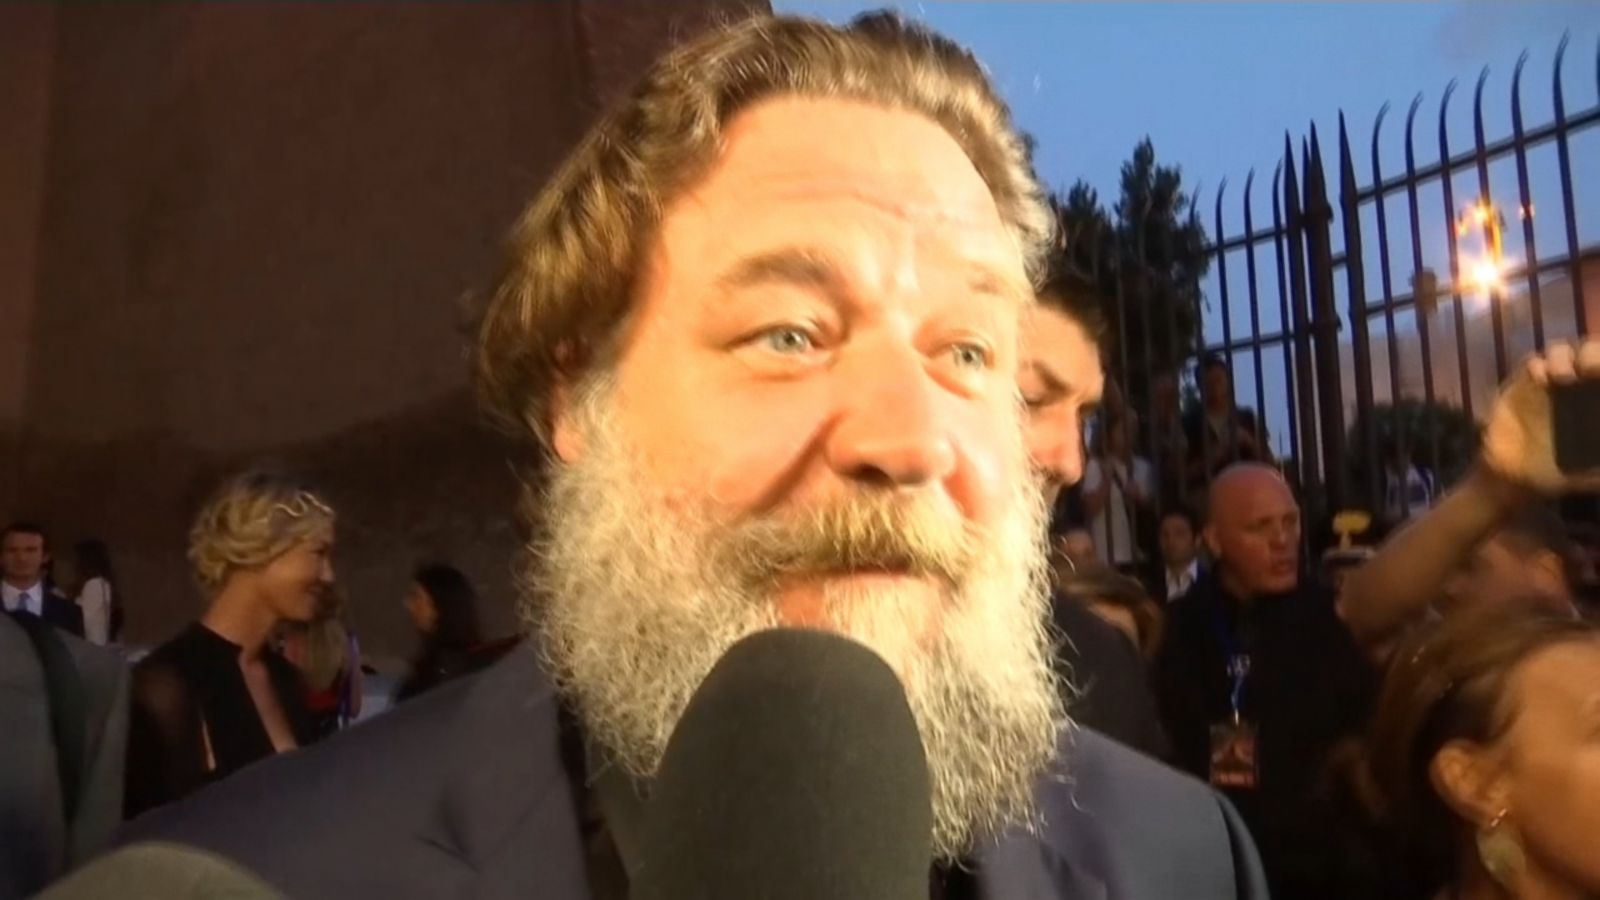 russell crowe visits real life colosseum for charity screening of